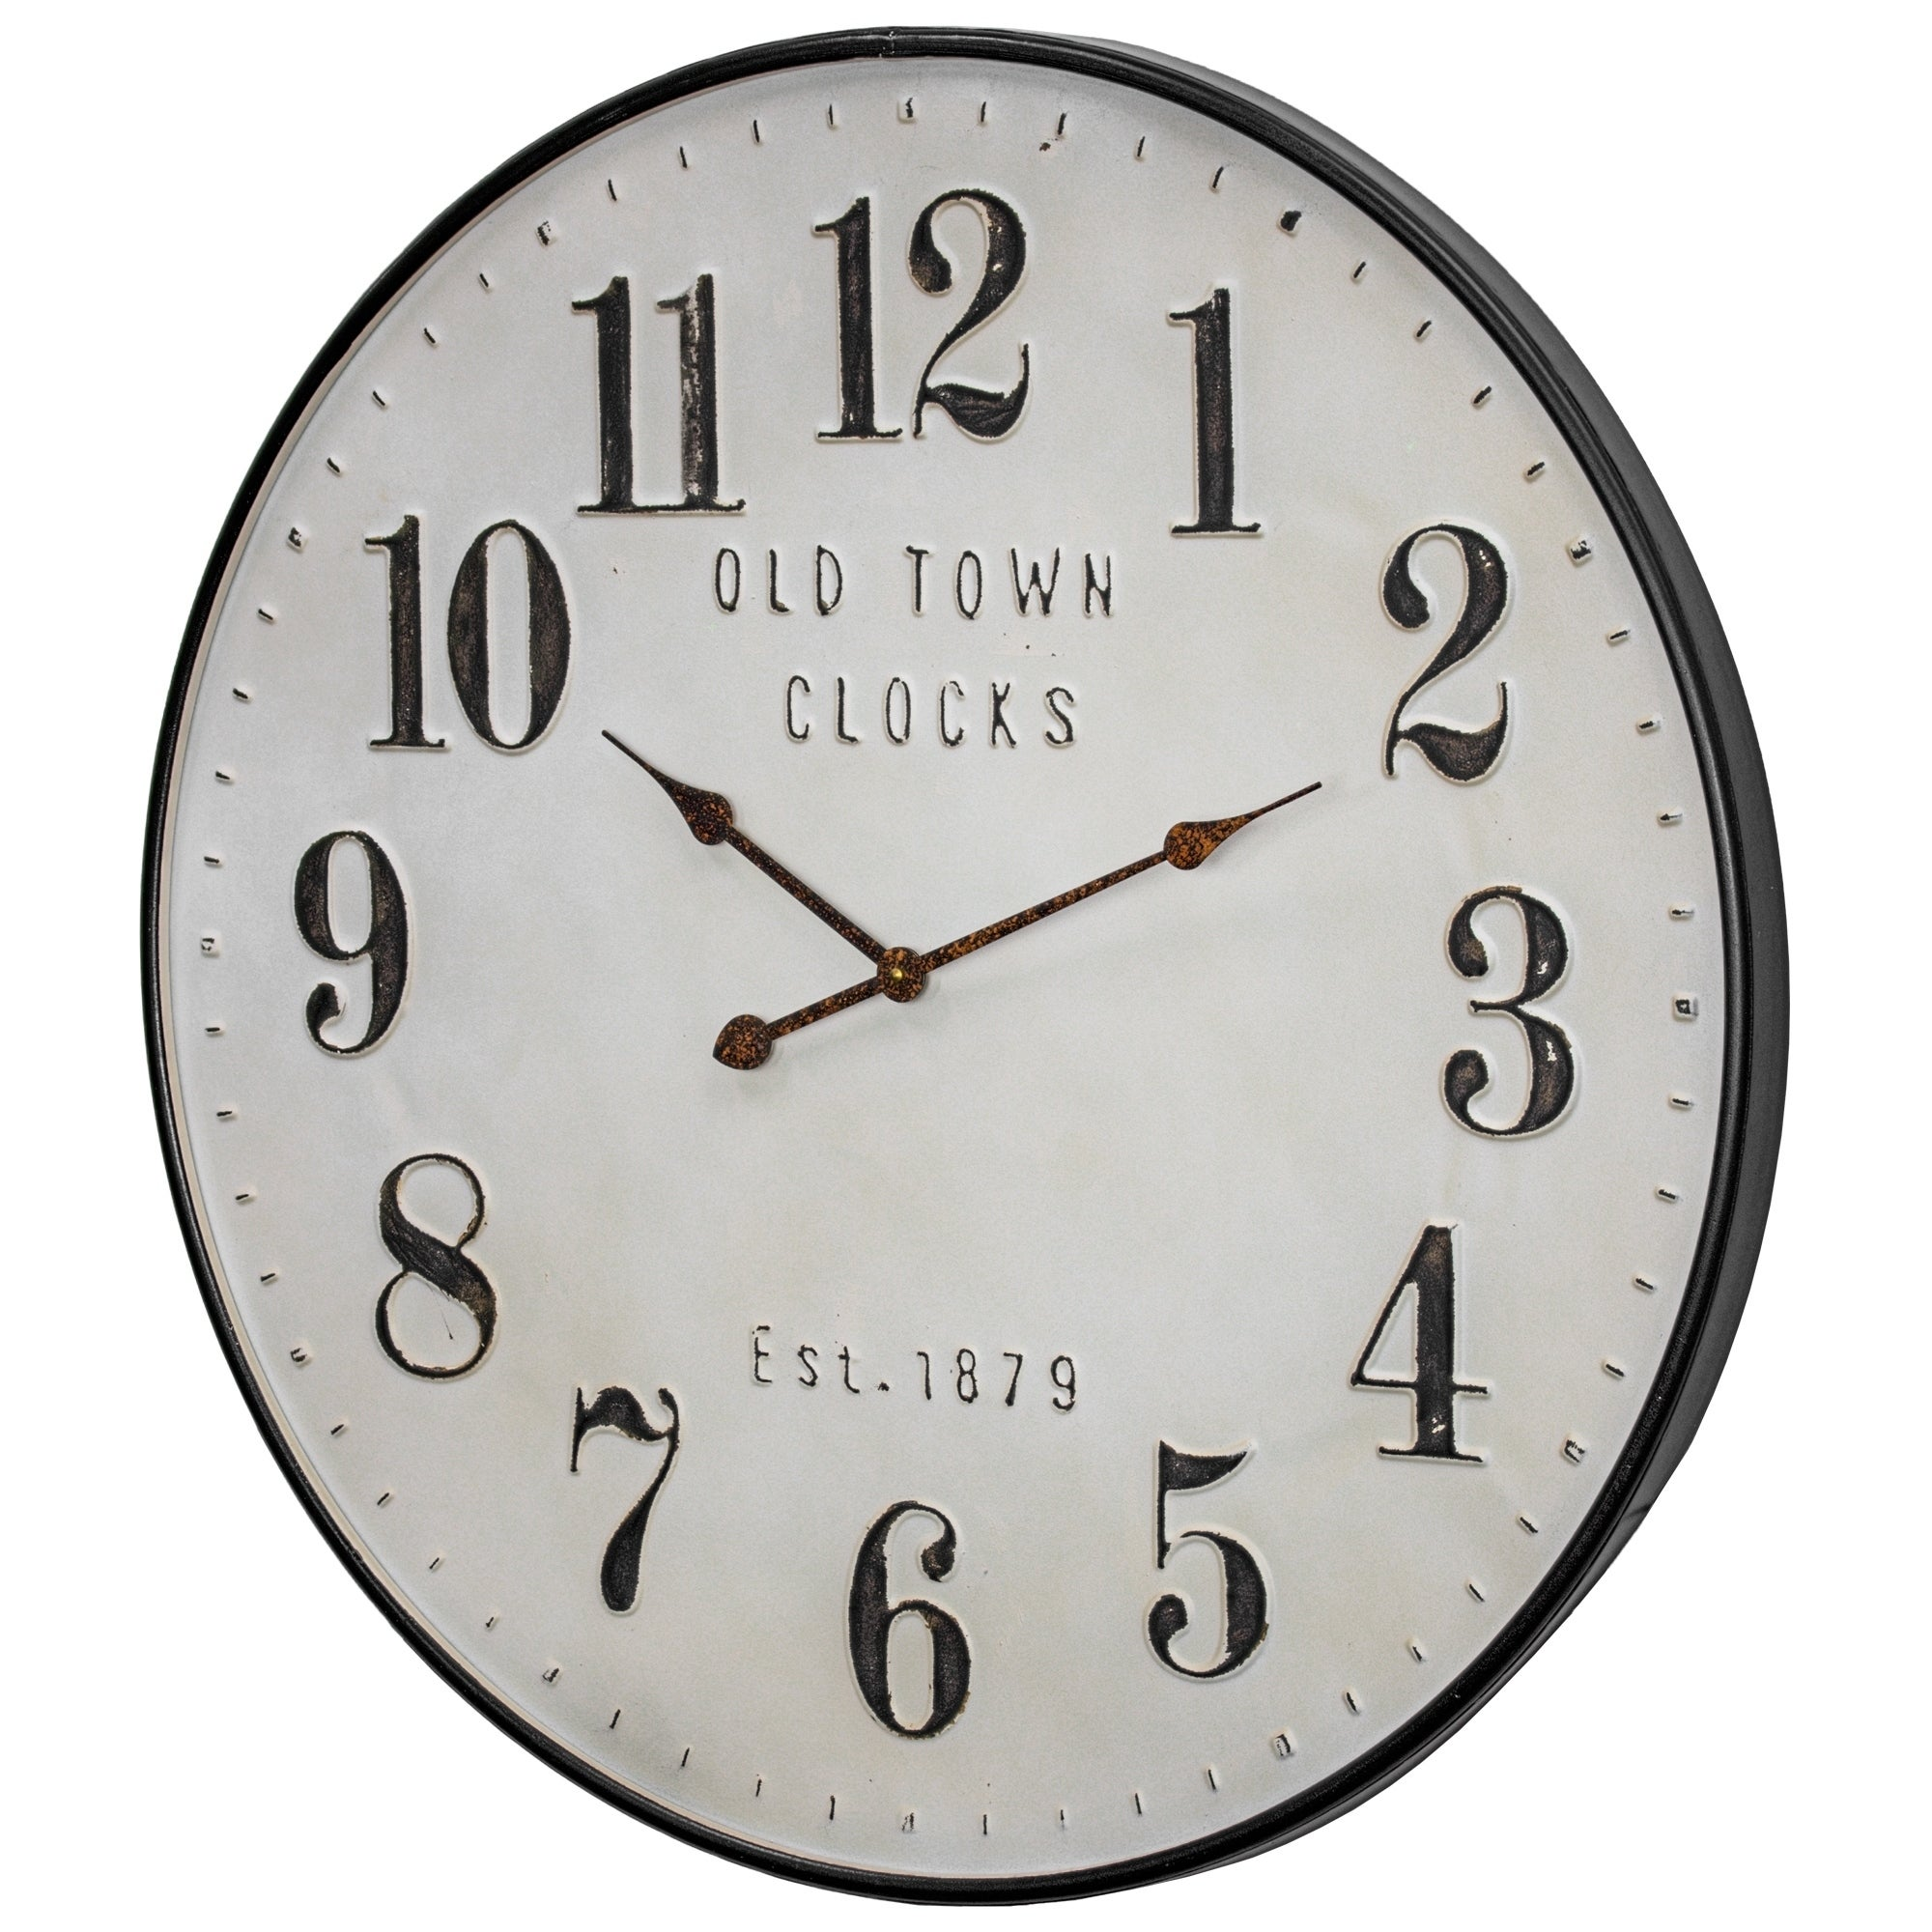 Old Town Clocks Vintage Oversized Metal Wall Clock 31 Overstock 30250865